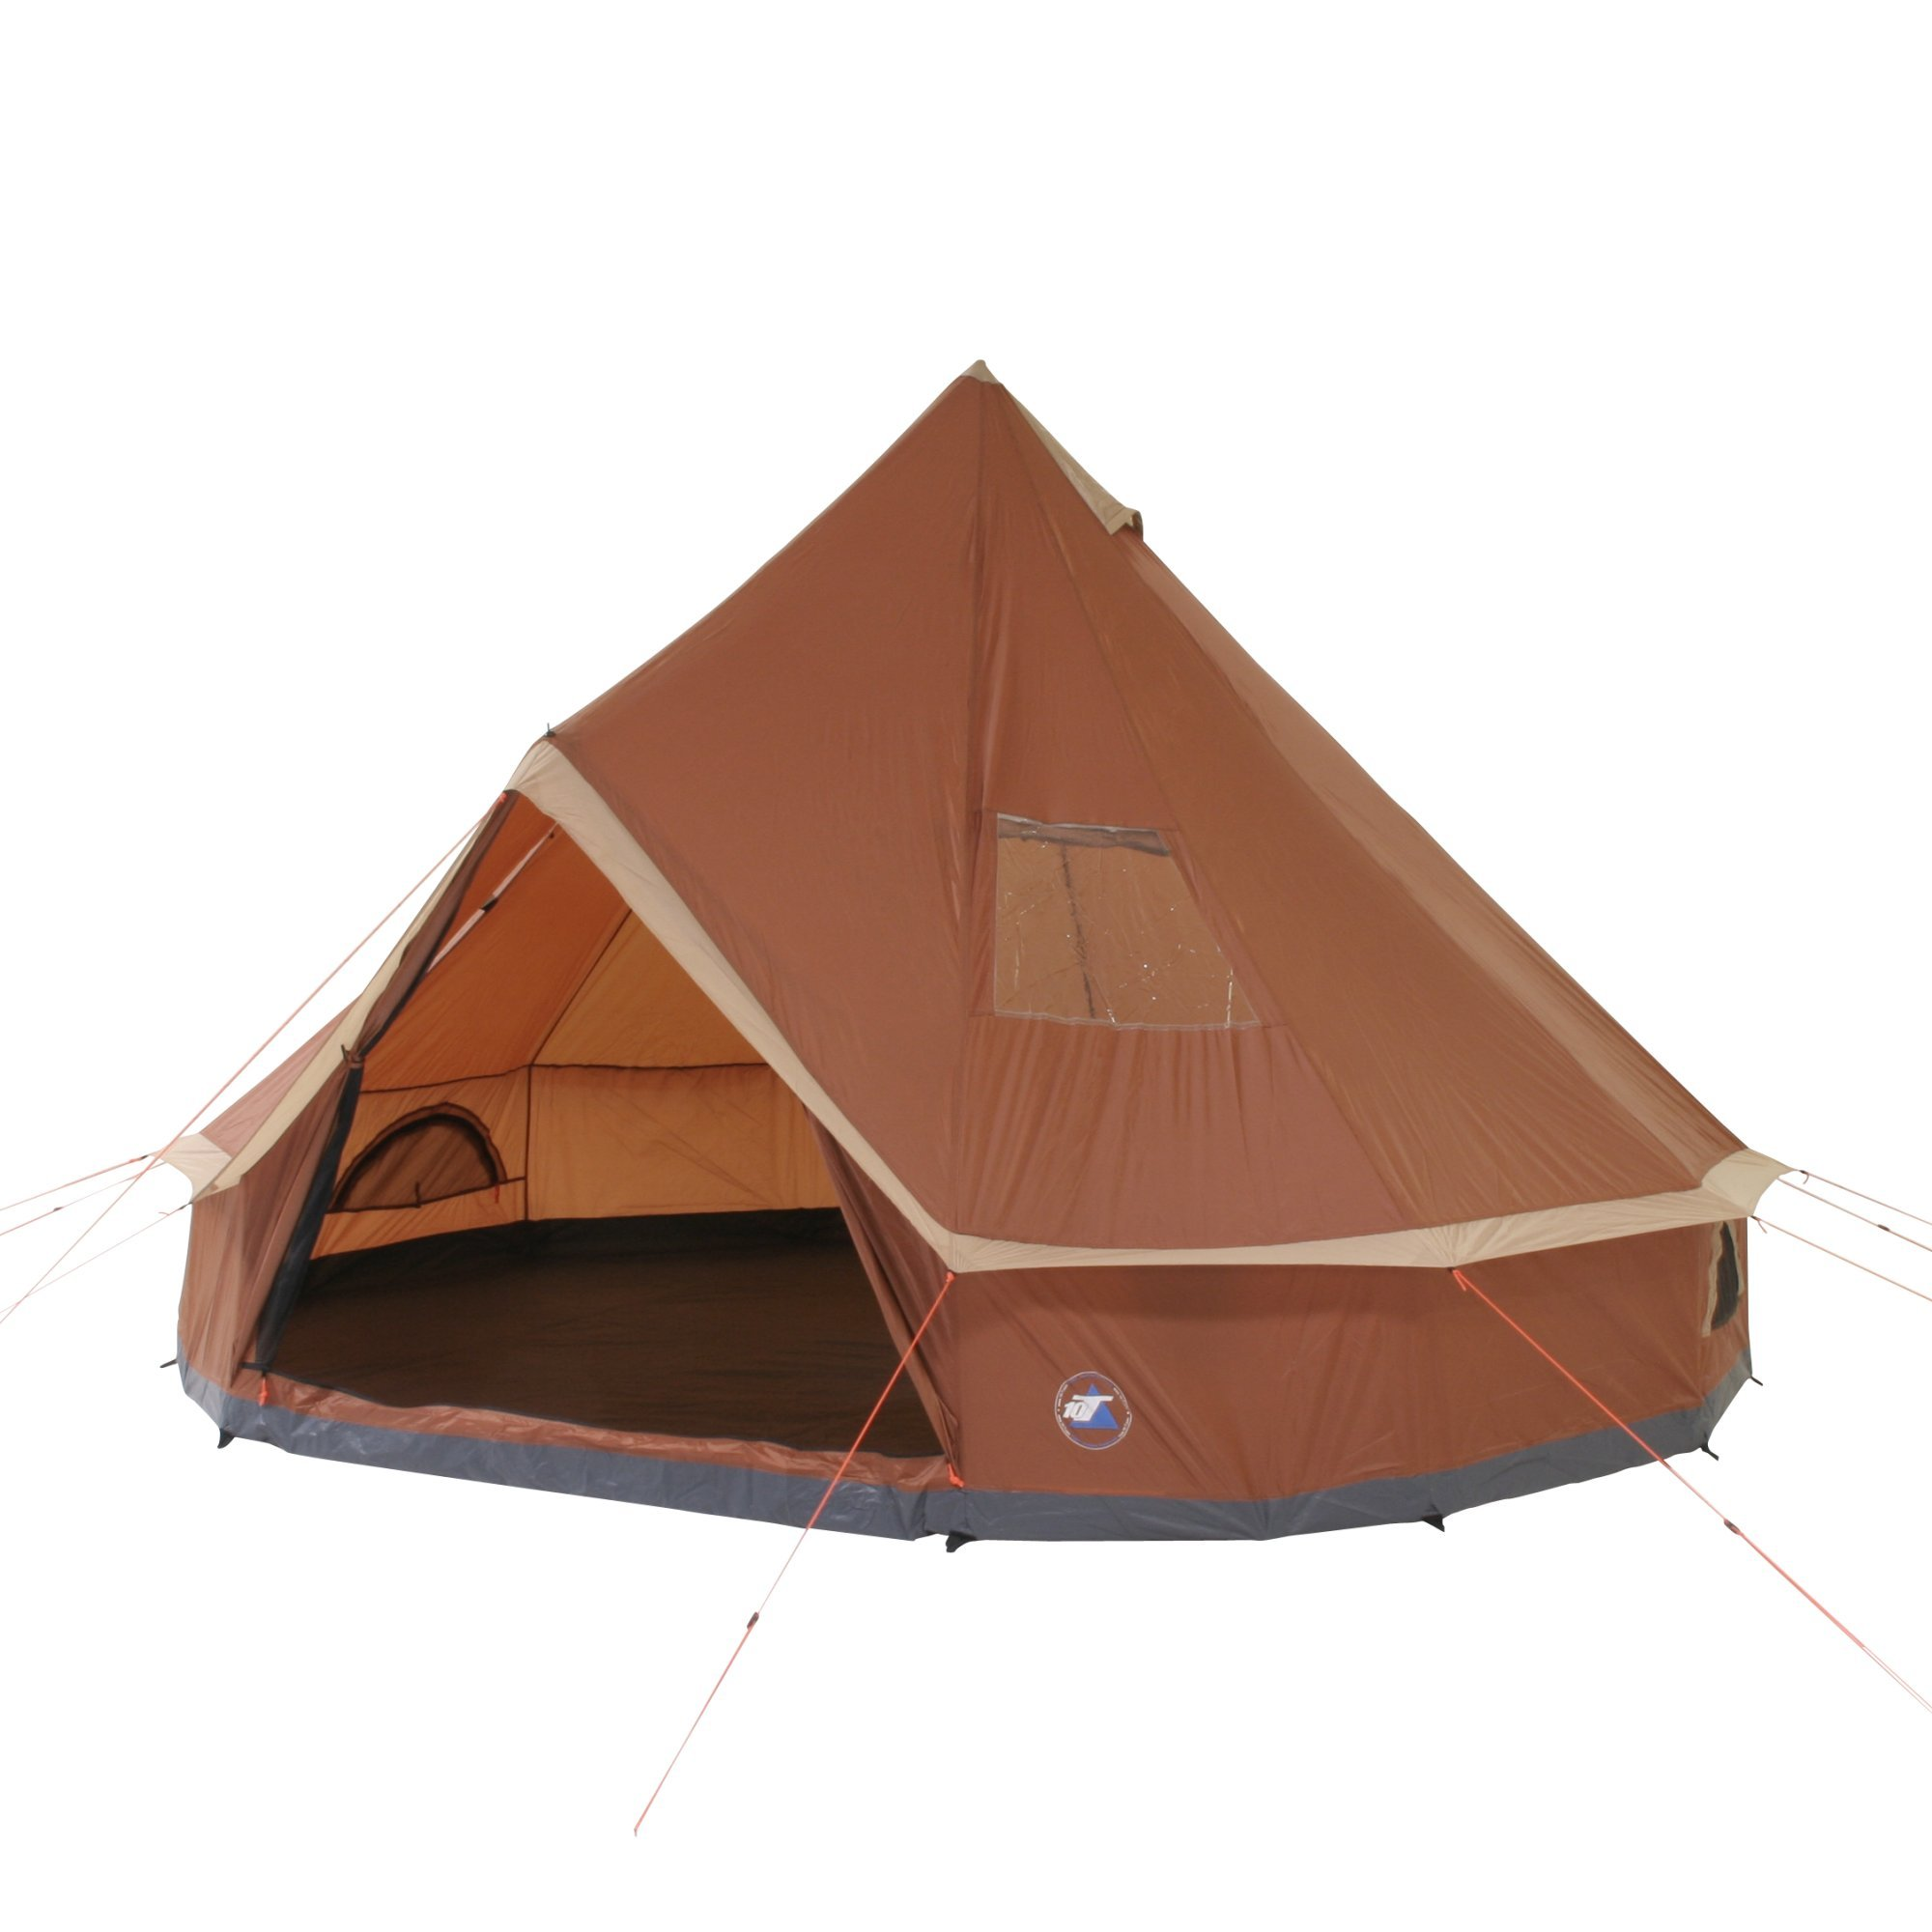 10T Outdoor Equipment 10T Mojave 400 Tienda de Teepee, Unisex, marrón, Estándar product